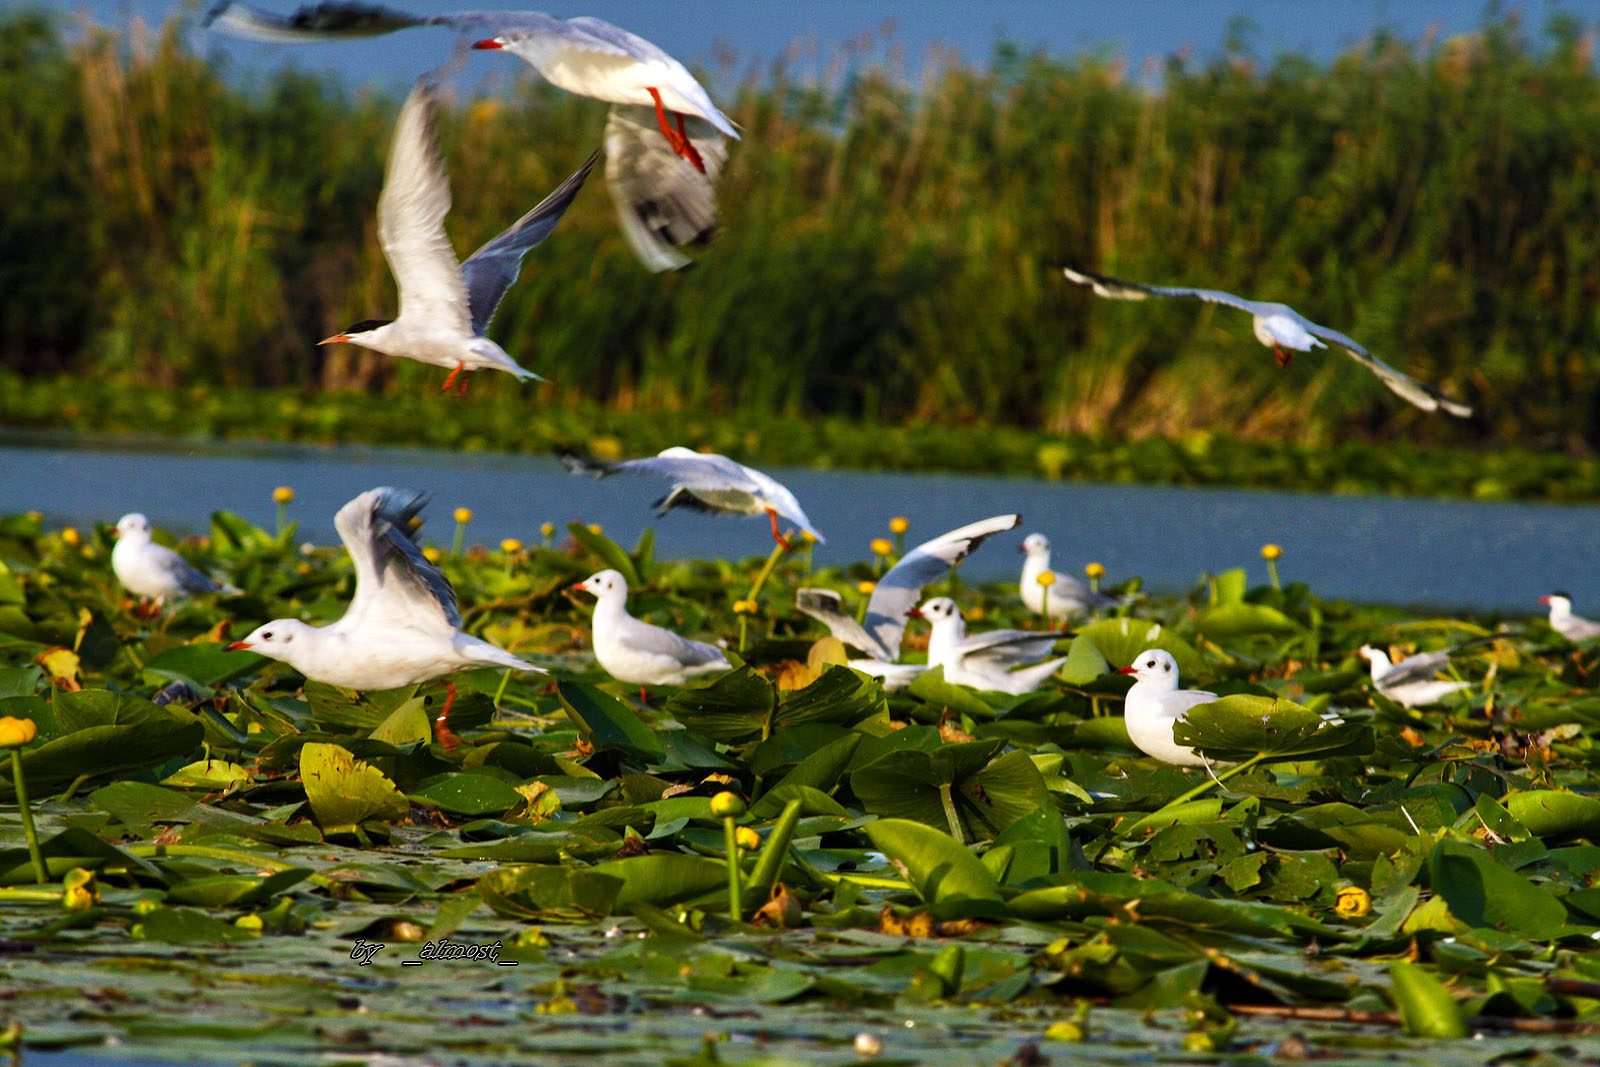 Danube Delta,UNESCO,Biosphere Reservation,traditional food,people,landscape,food Danube delta,carp traditional,sturgeons